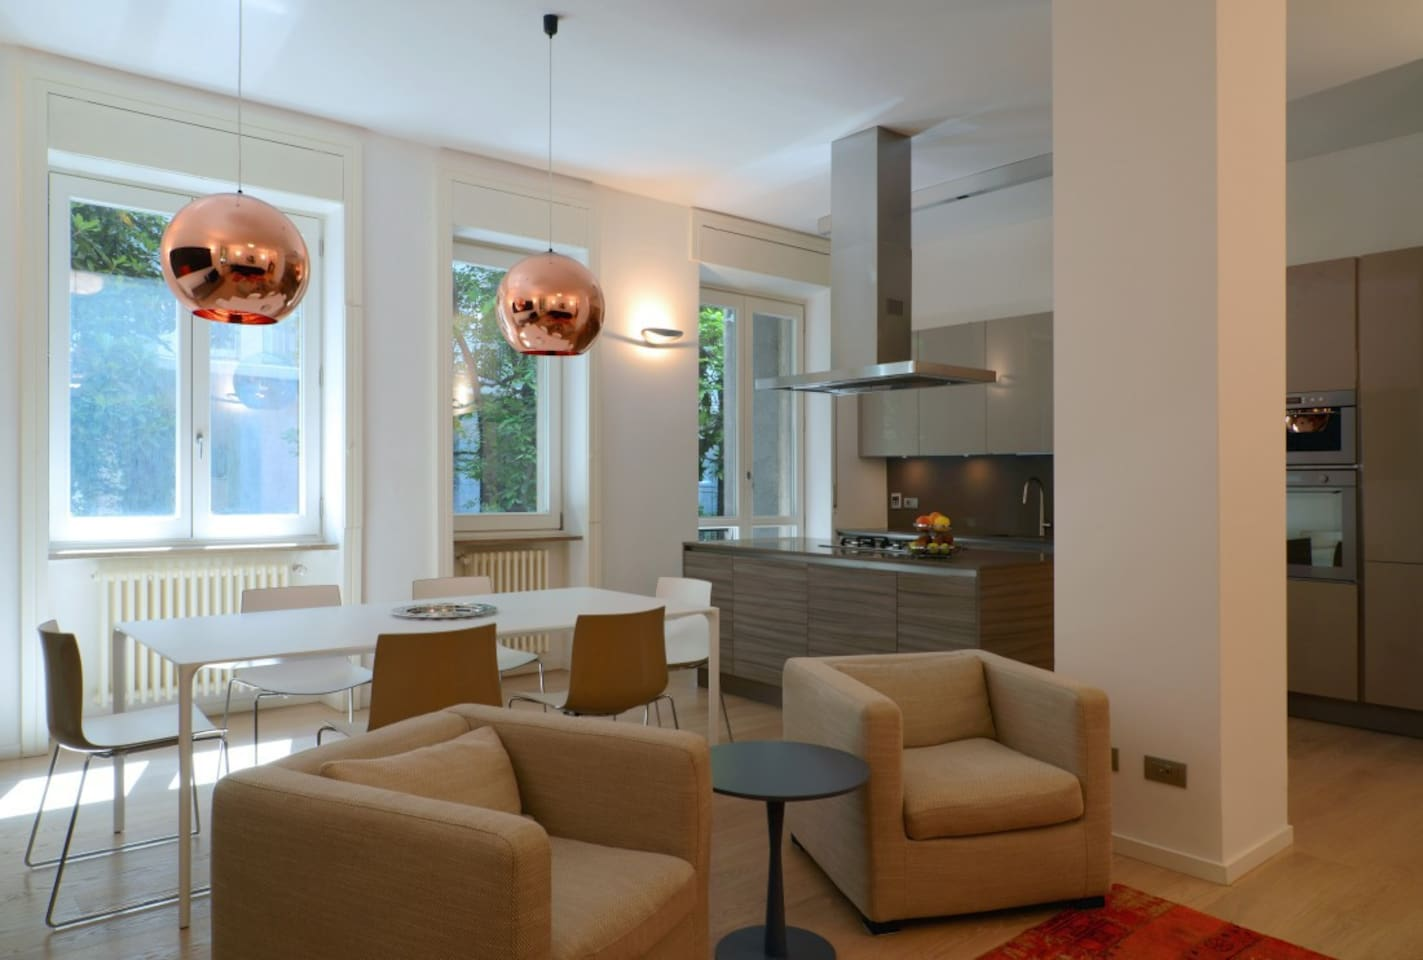 open space - kitchen and lounge